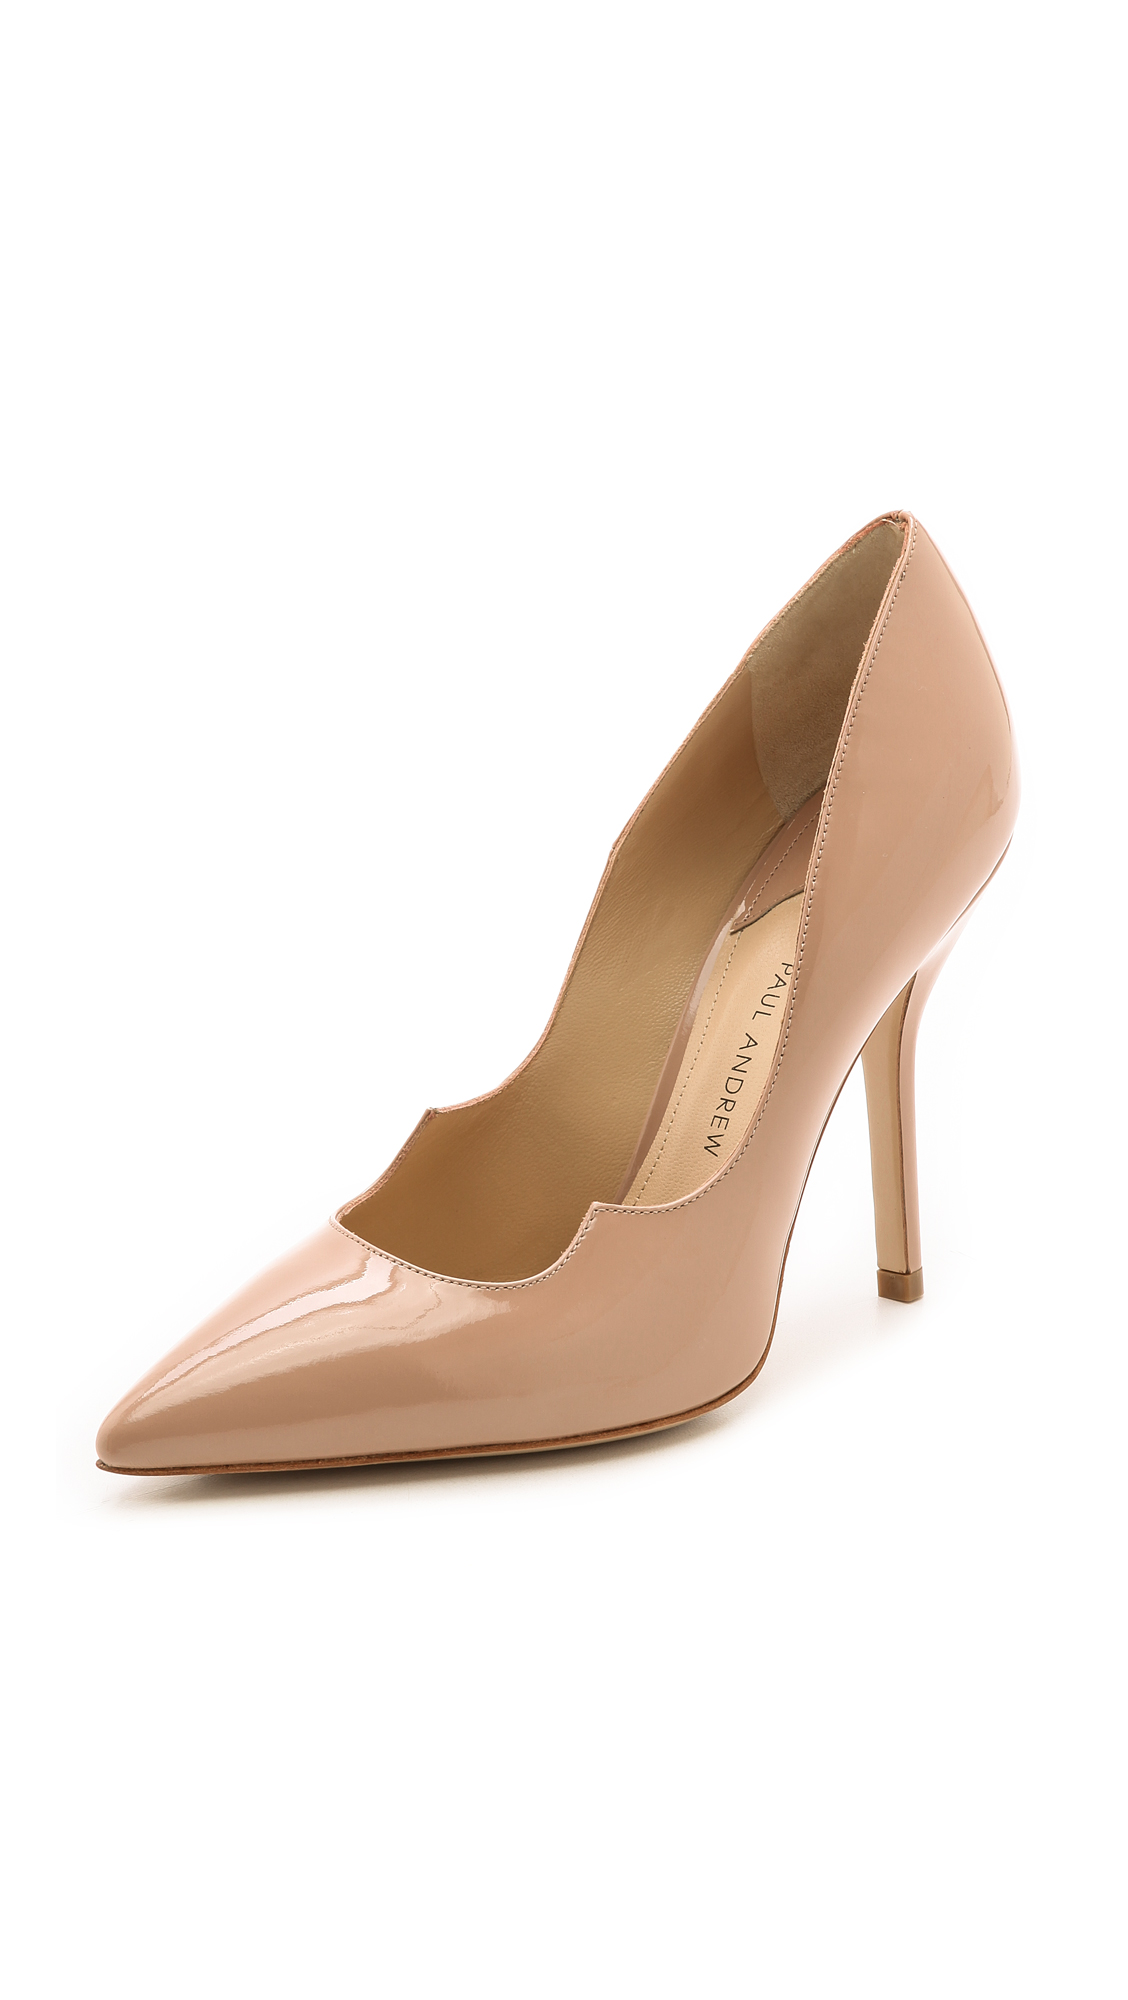 Paul Andrew 105Mm Zenadia Brushed Leather Pumps, Nude